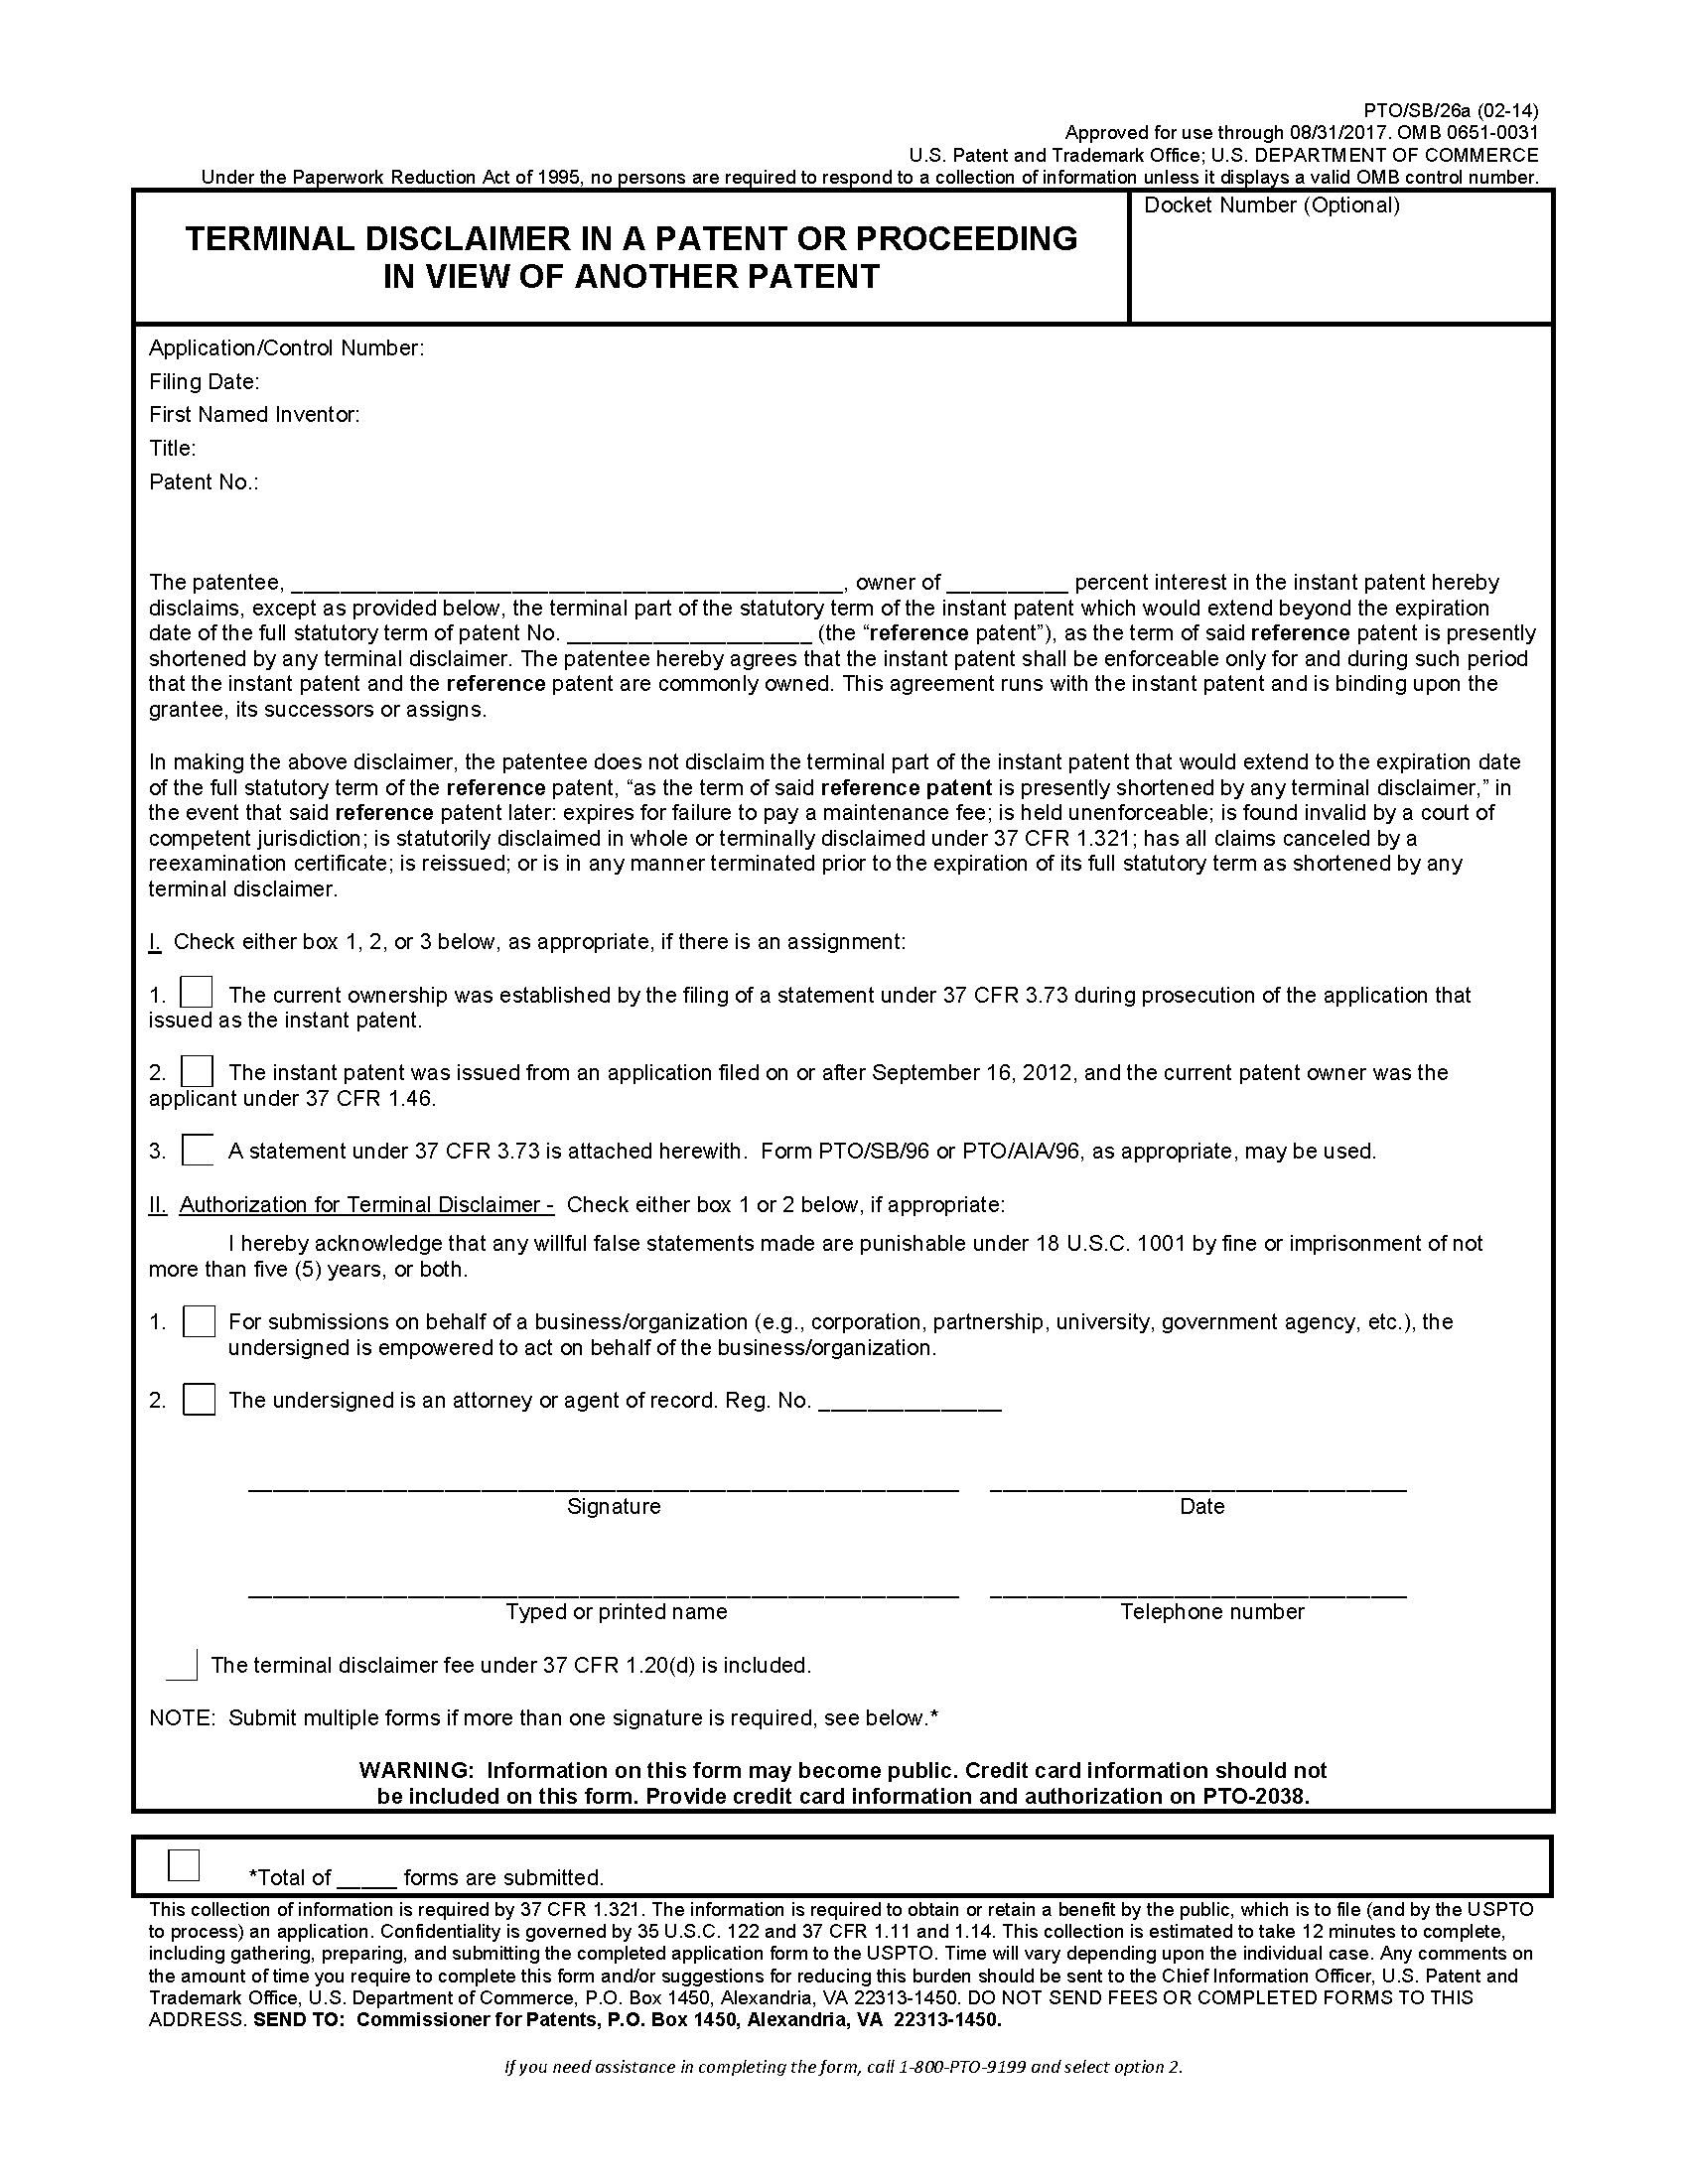 Patent Infringement Letter Template - 1490 Disclaimers